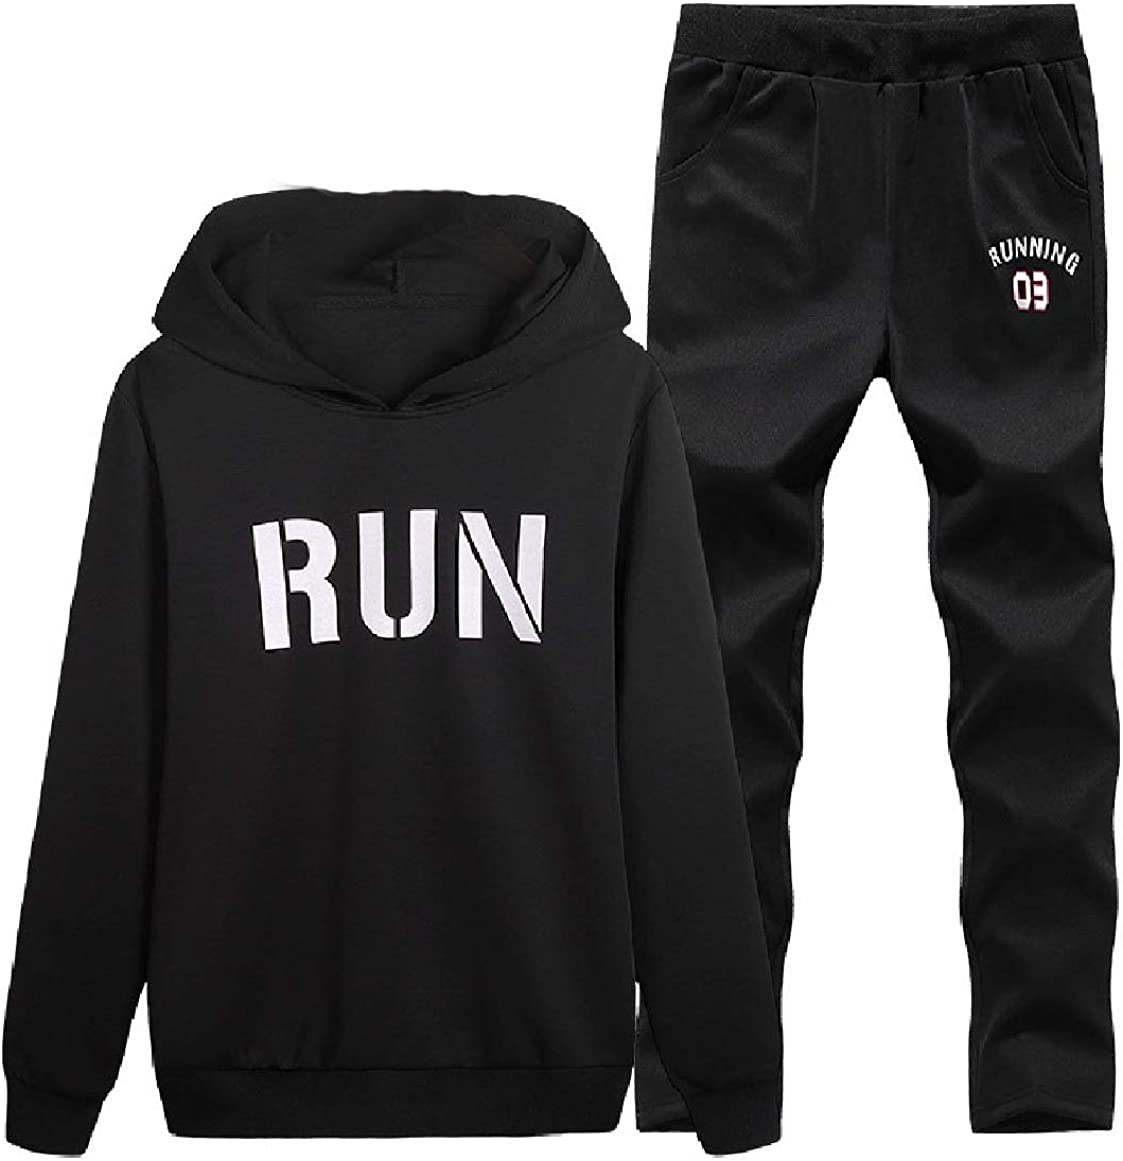 RingBong Mens Printing Hooded Leisure Athletic Runnung Sports Suit Tracksuit